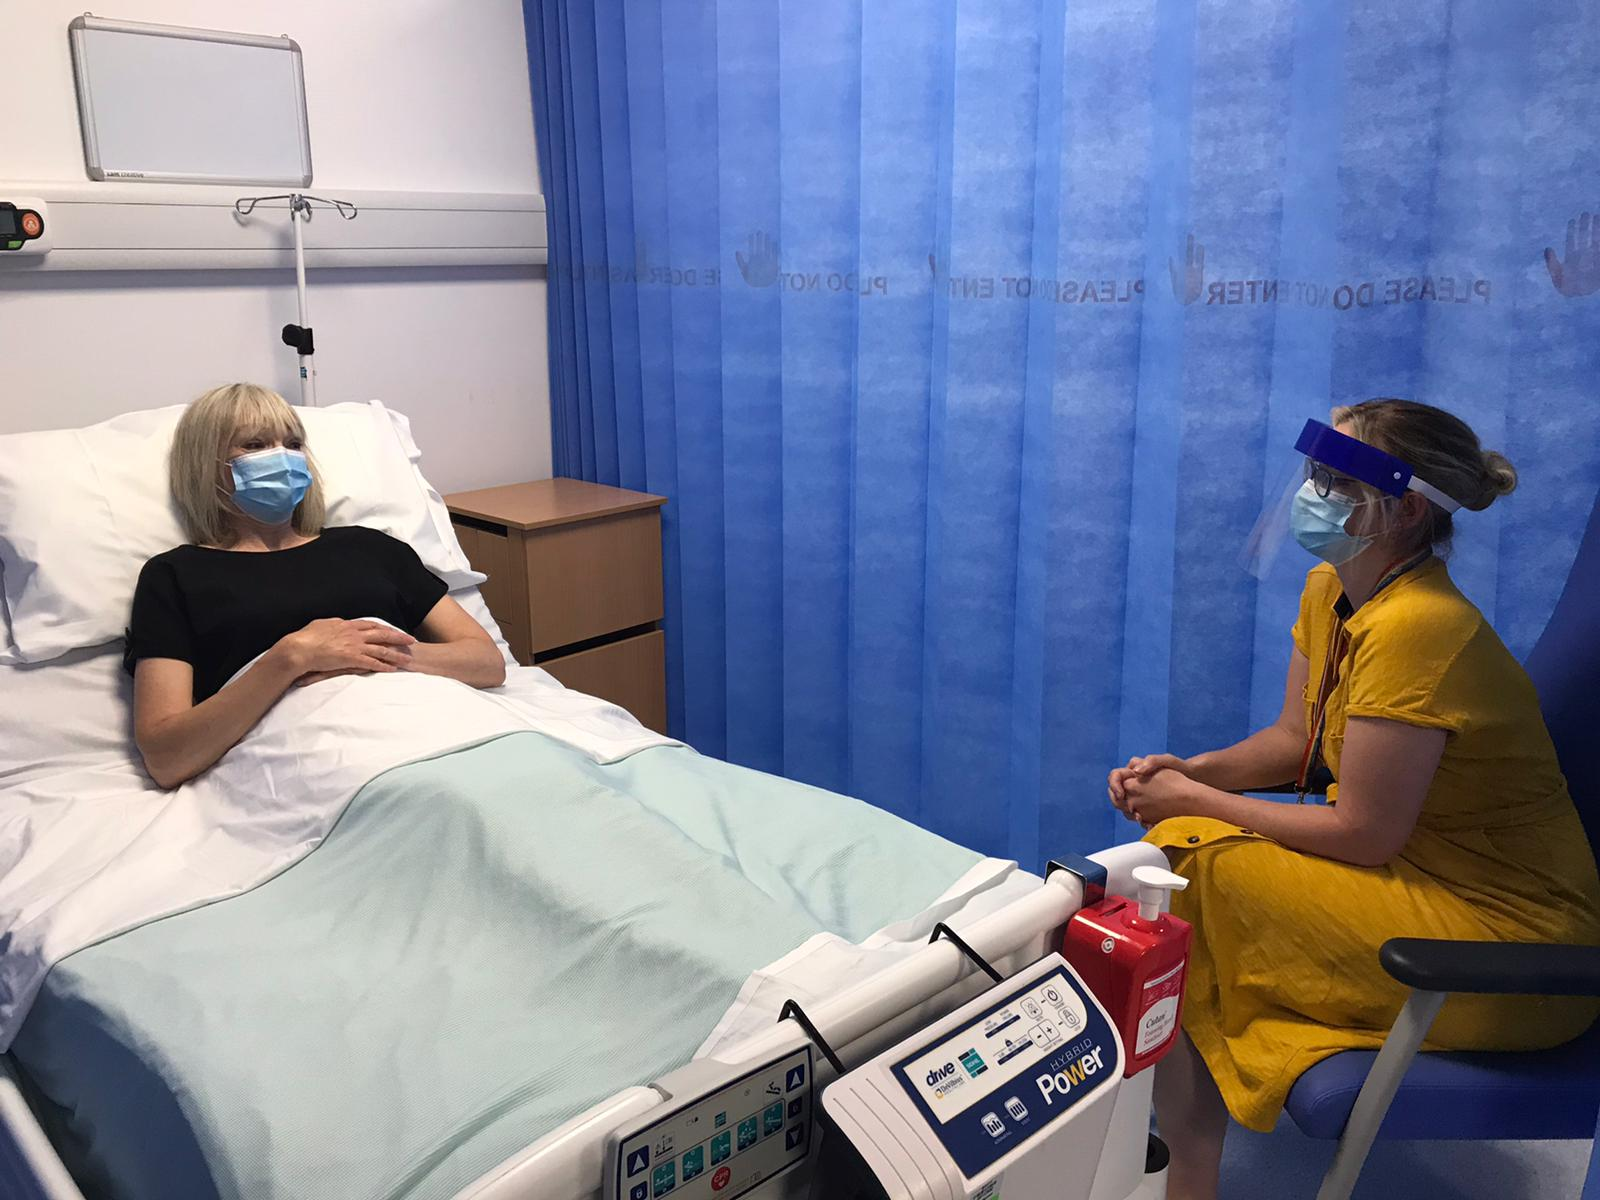 Pic of a patient in bed with a visitor. Both wearing surgical masks/relevant PPE.